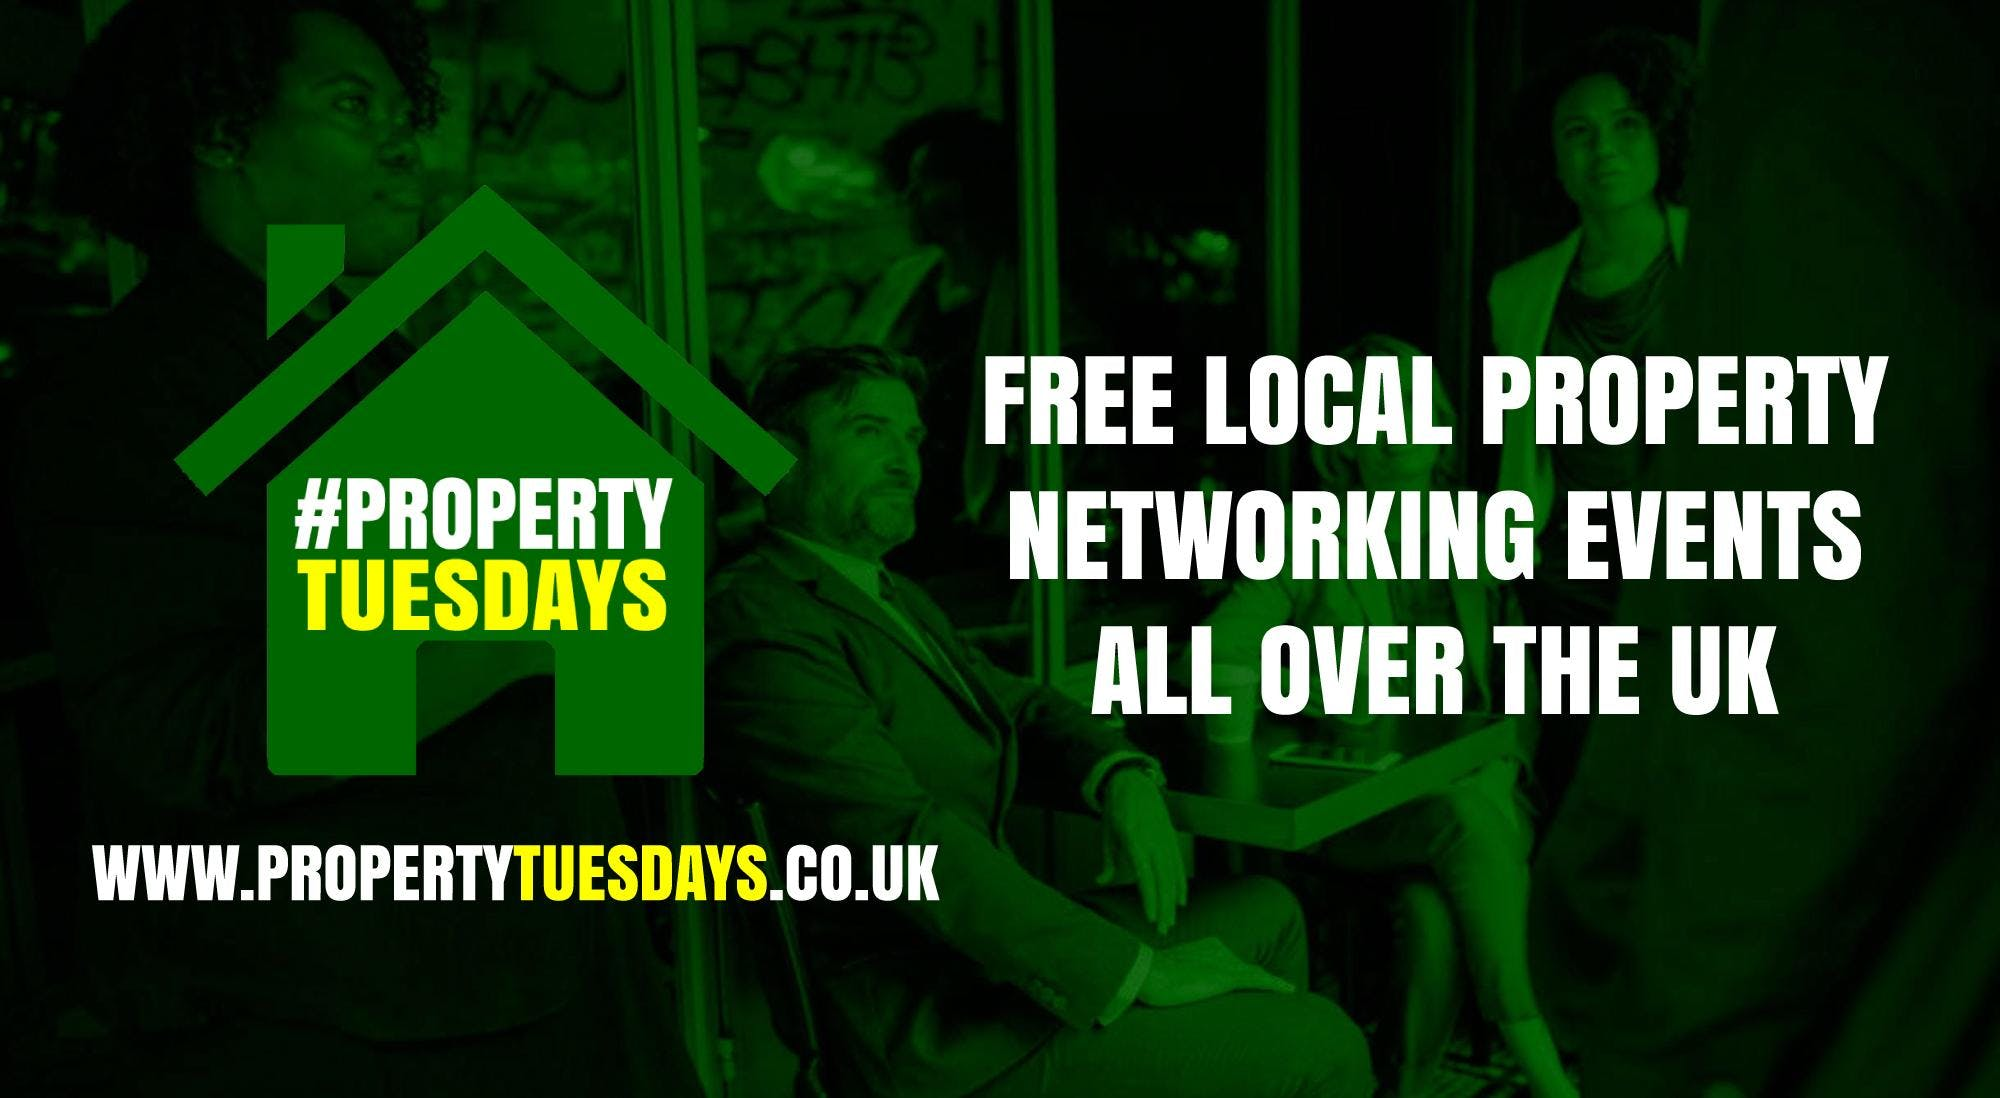 Property Tuesdays! Free property networking event in Leek